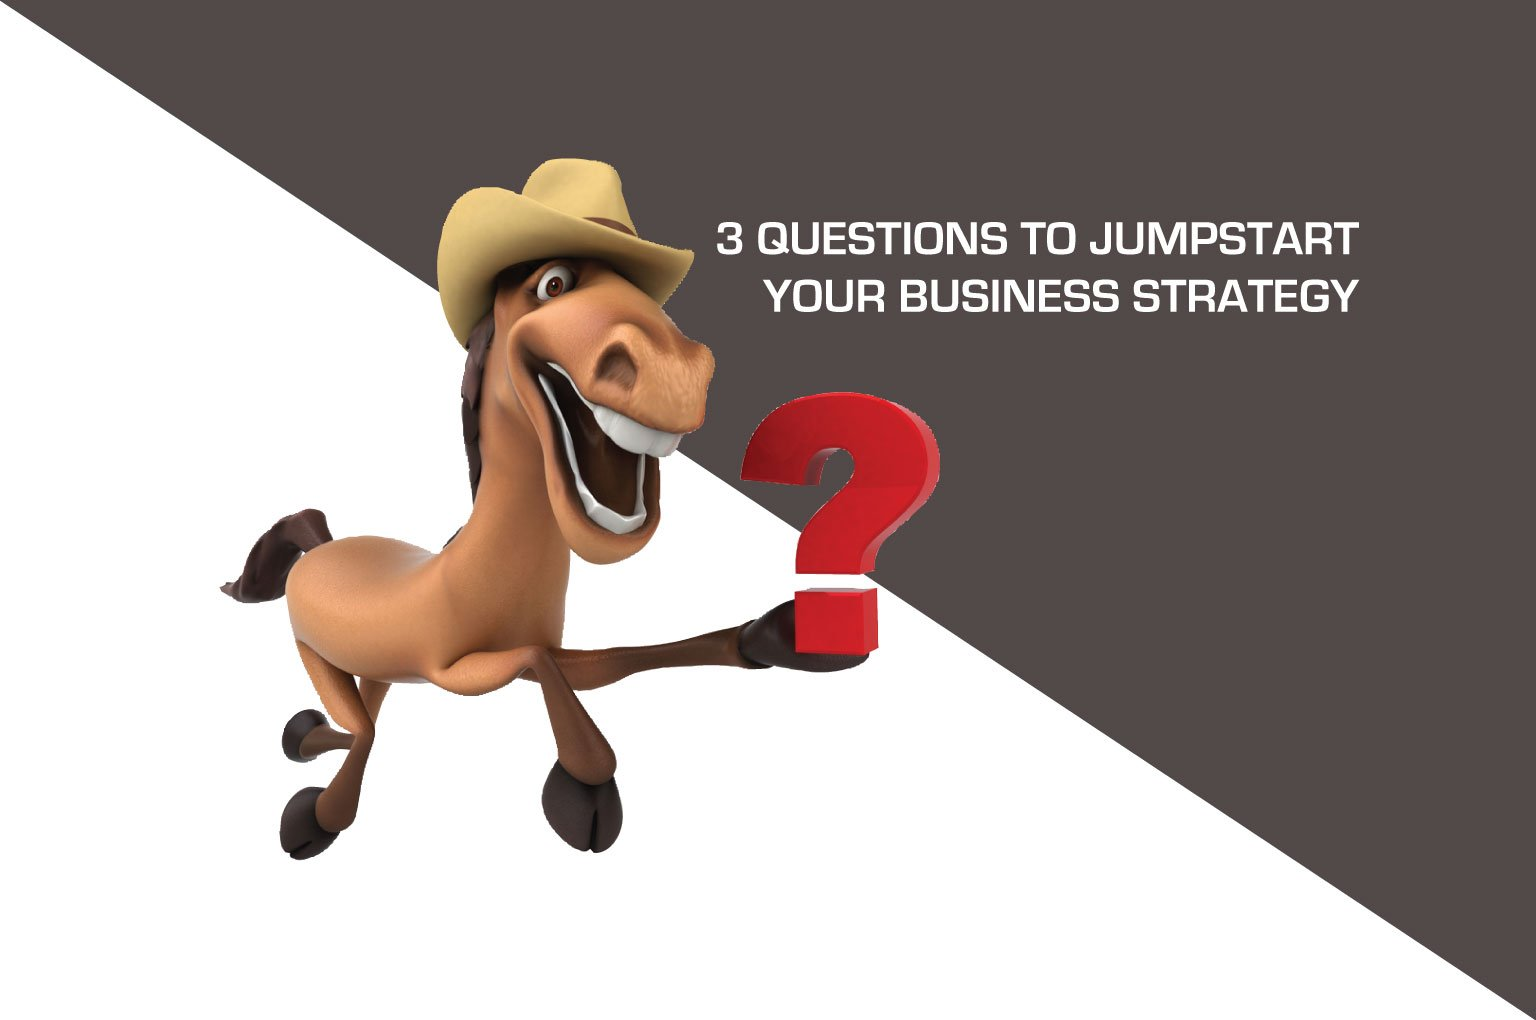 3 Questions to jumpstart your business strategy